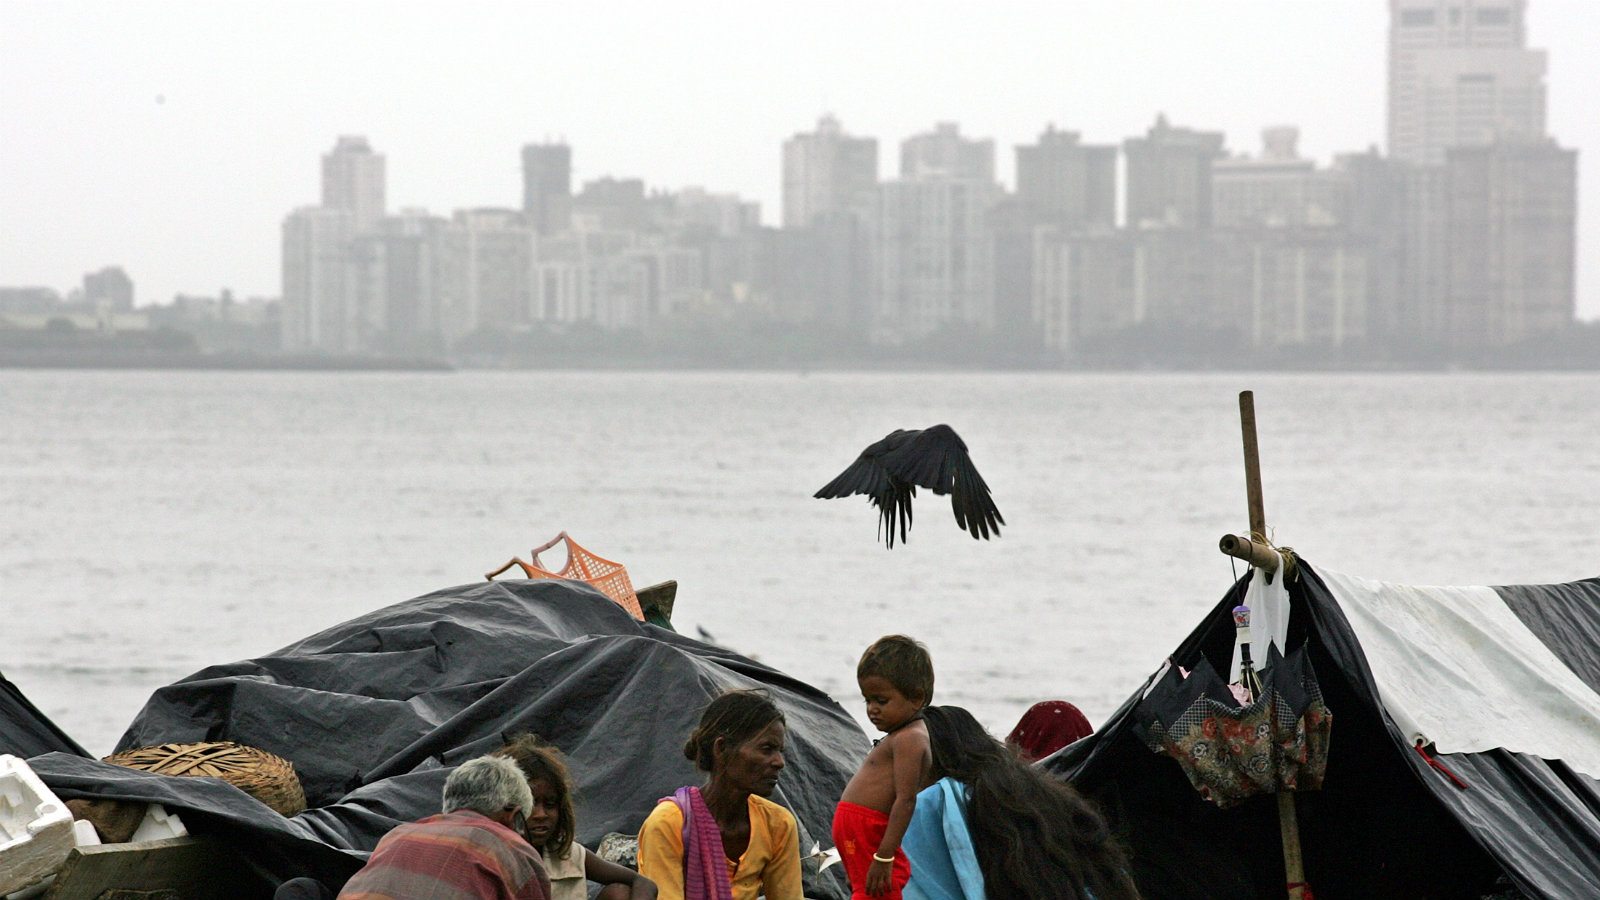 A homeless Indian family sits on a beach in Bombay August 4, 2005. India's share index rose to its ninth-straight closing high on Thursday, boosted by a major asset spin-off by Reliance Industries and robust foreign fund flows, as India's financial hub and film capital is gradually returning to normal life after a devastating flood killed nearly 1000 people and wreaked havoc on the city's rail, road and flight services.